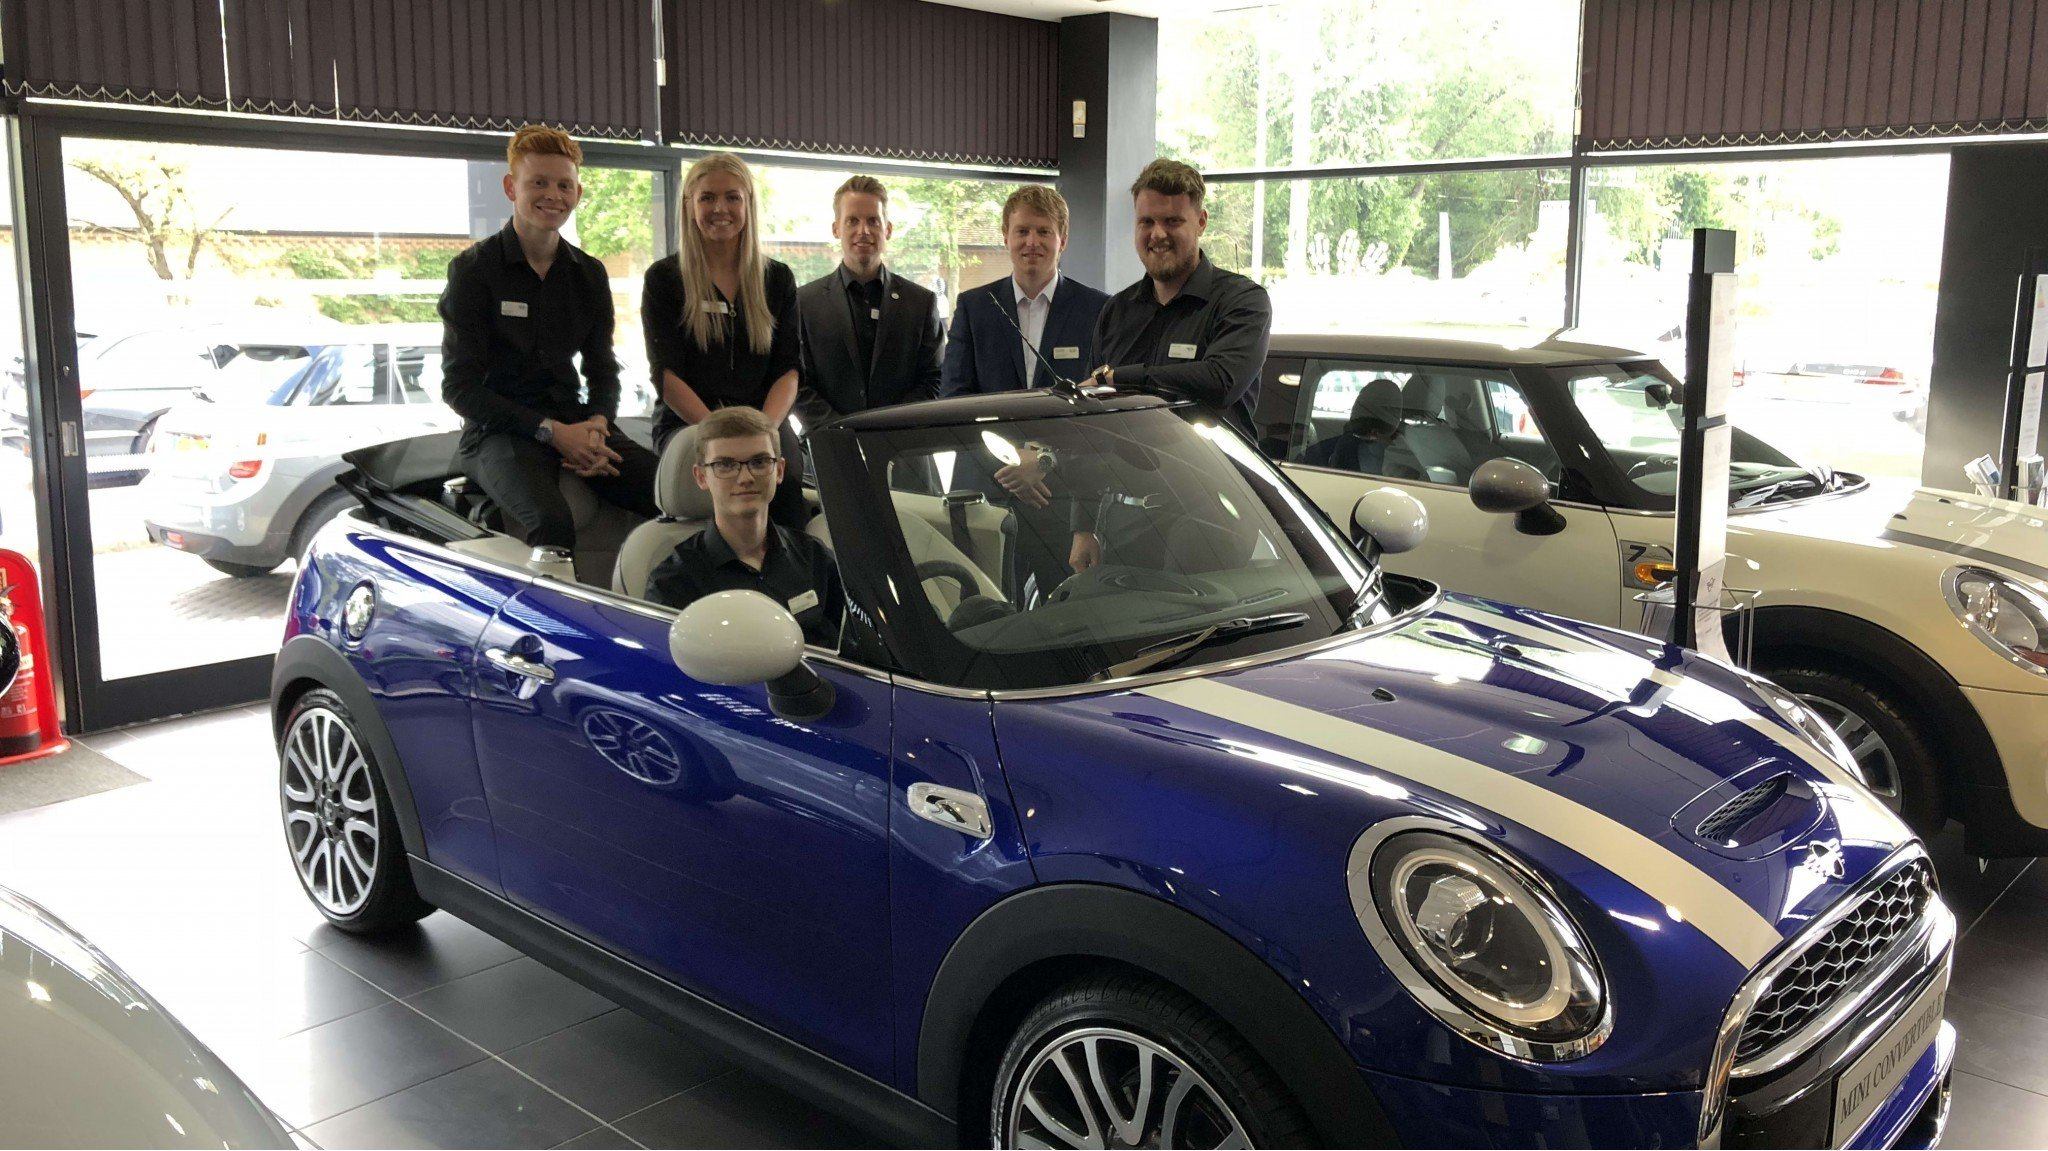 Dick Lovett BMW and MINI Hungerford: Providing a personal service for residents in and around Andover and Newbury